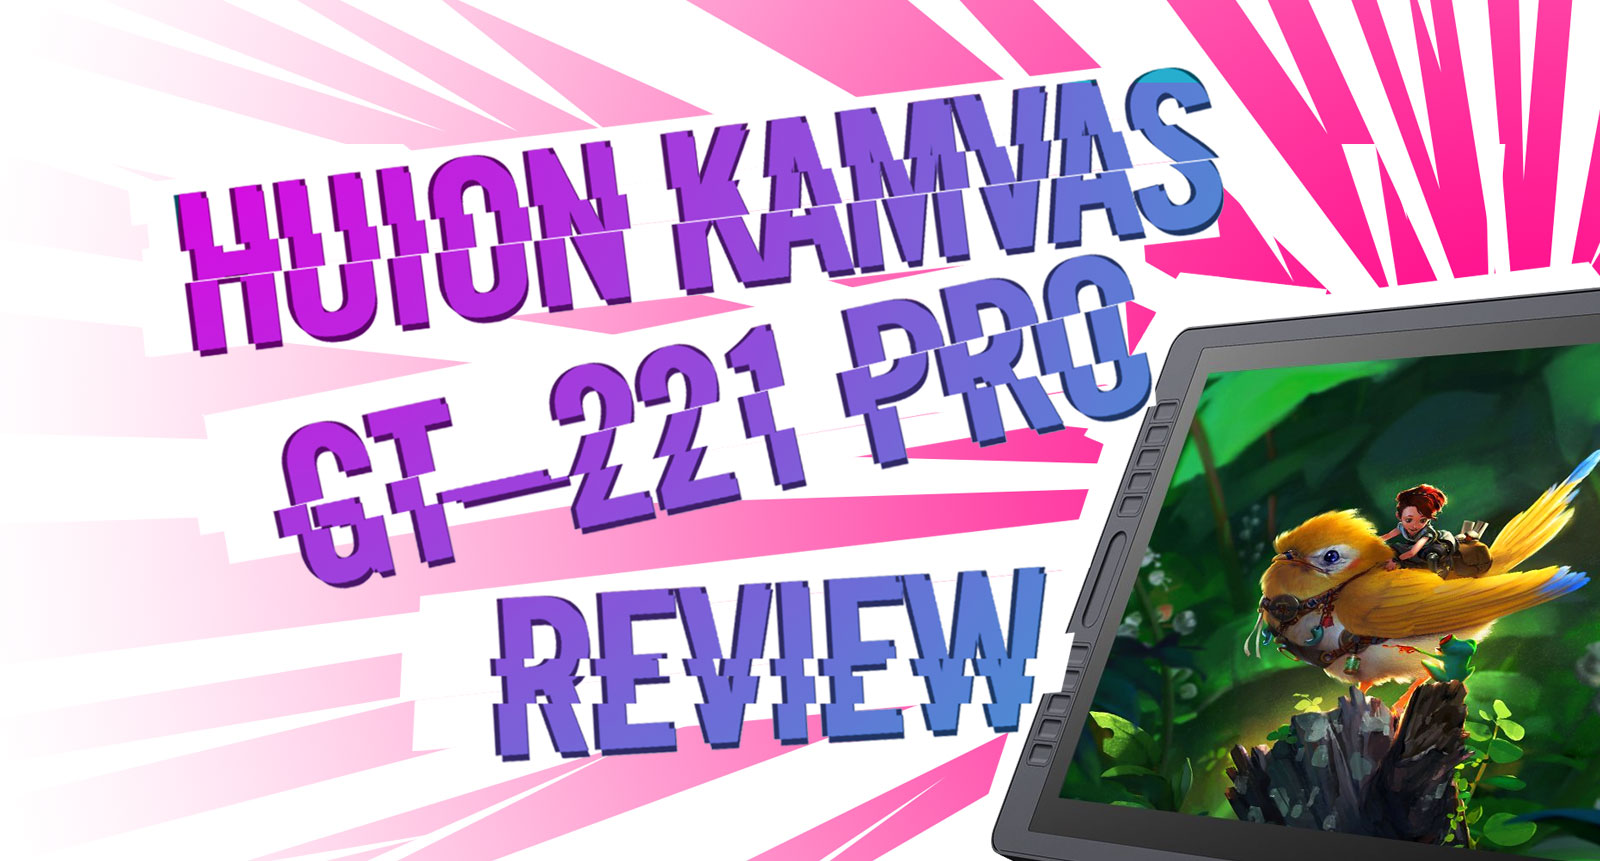 Huion Kamvas GT-221 Pro Review | crystalpulse.co.uk